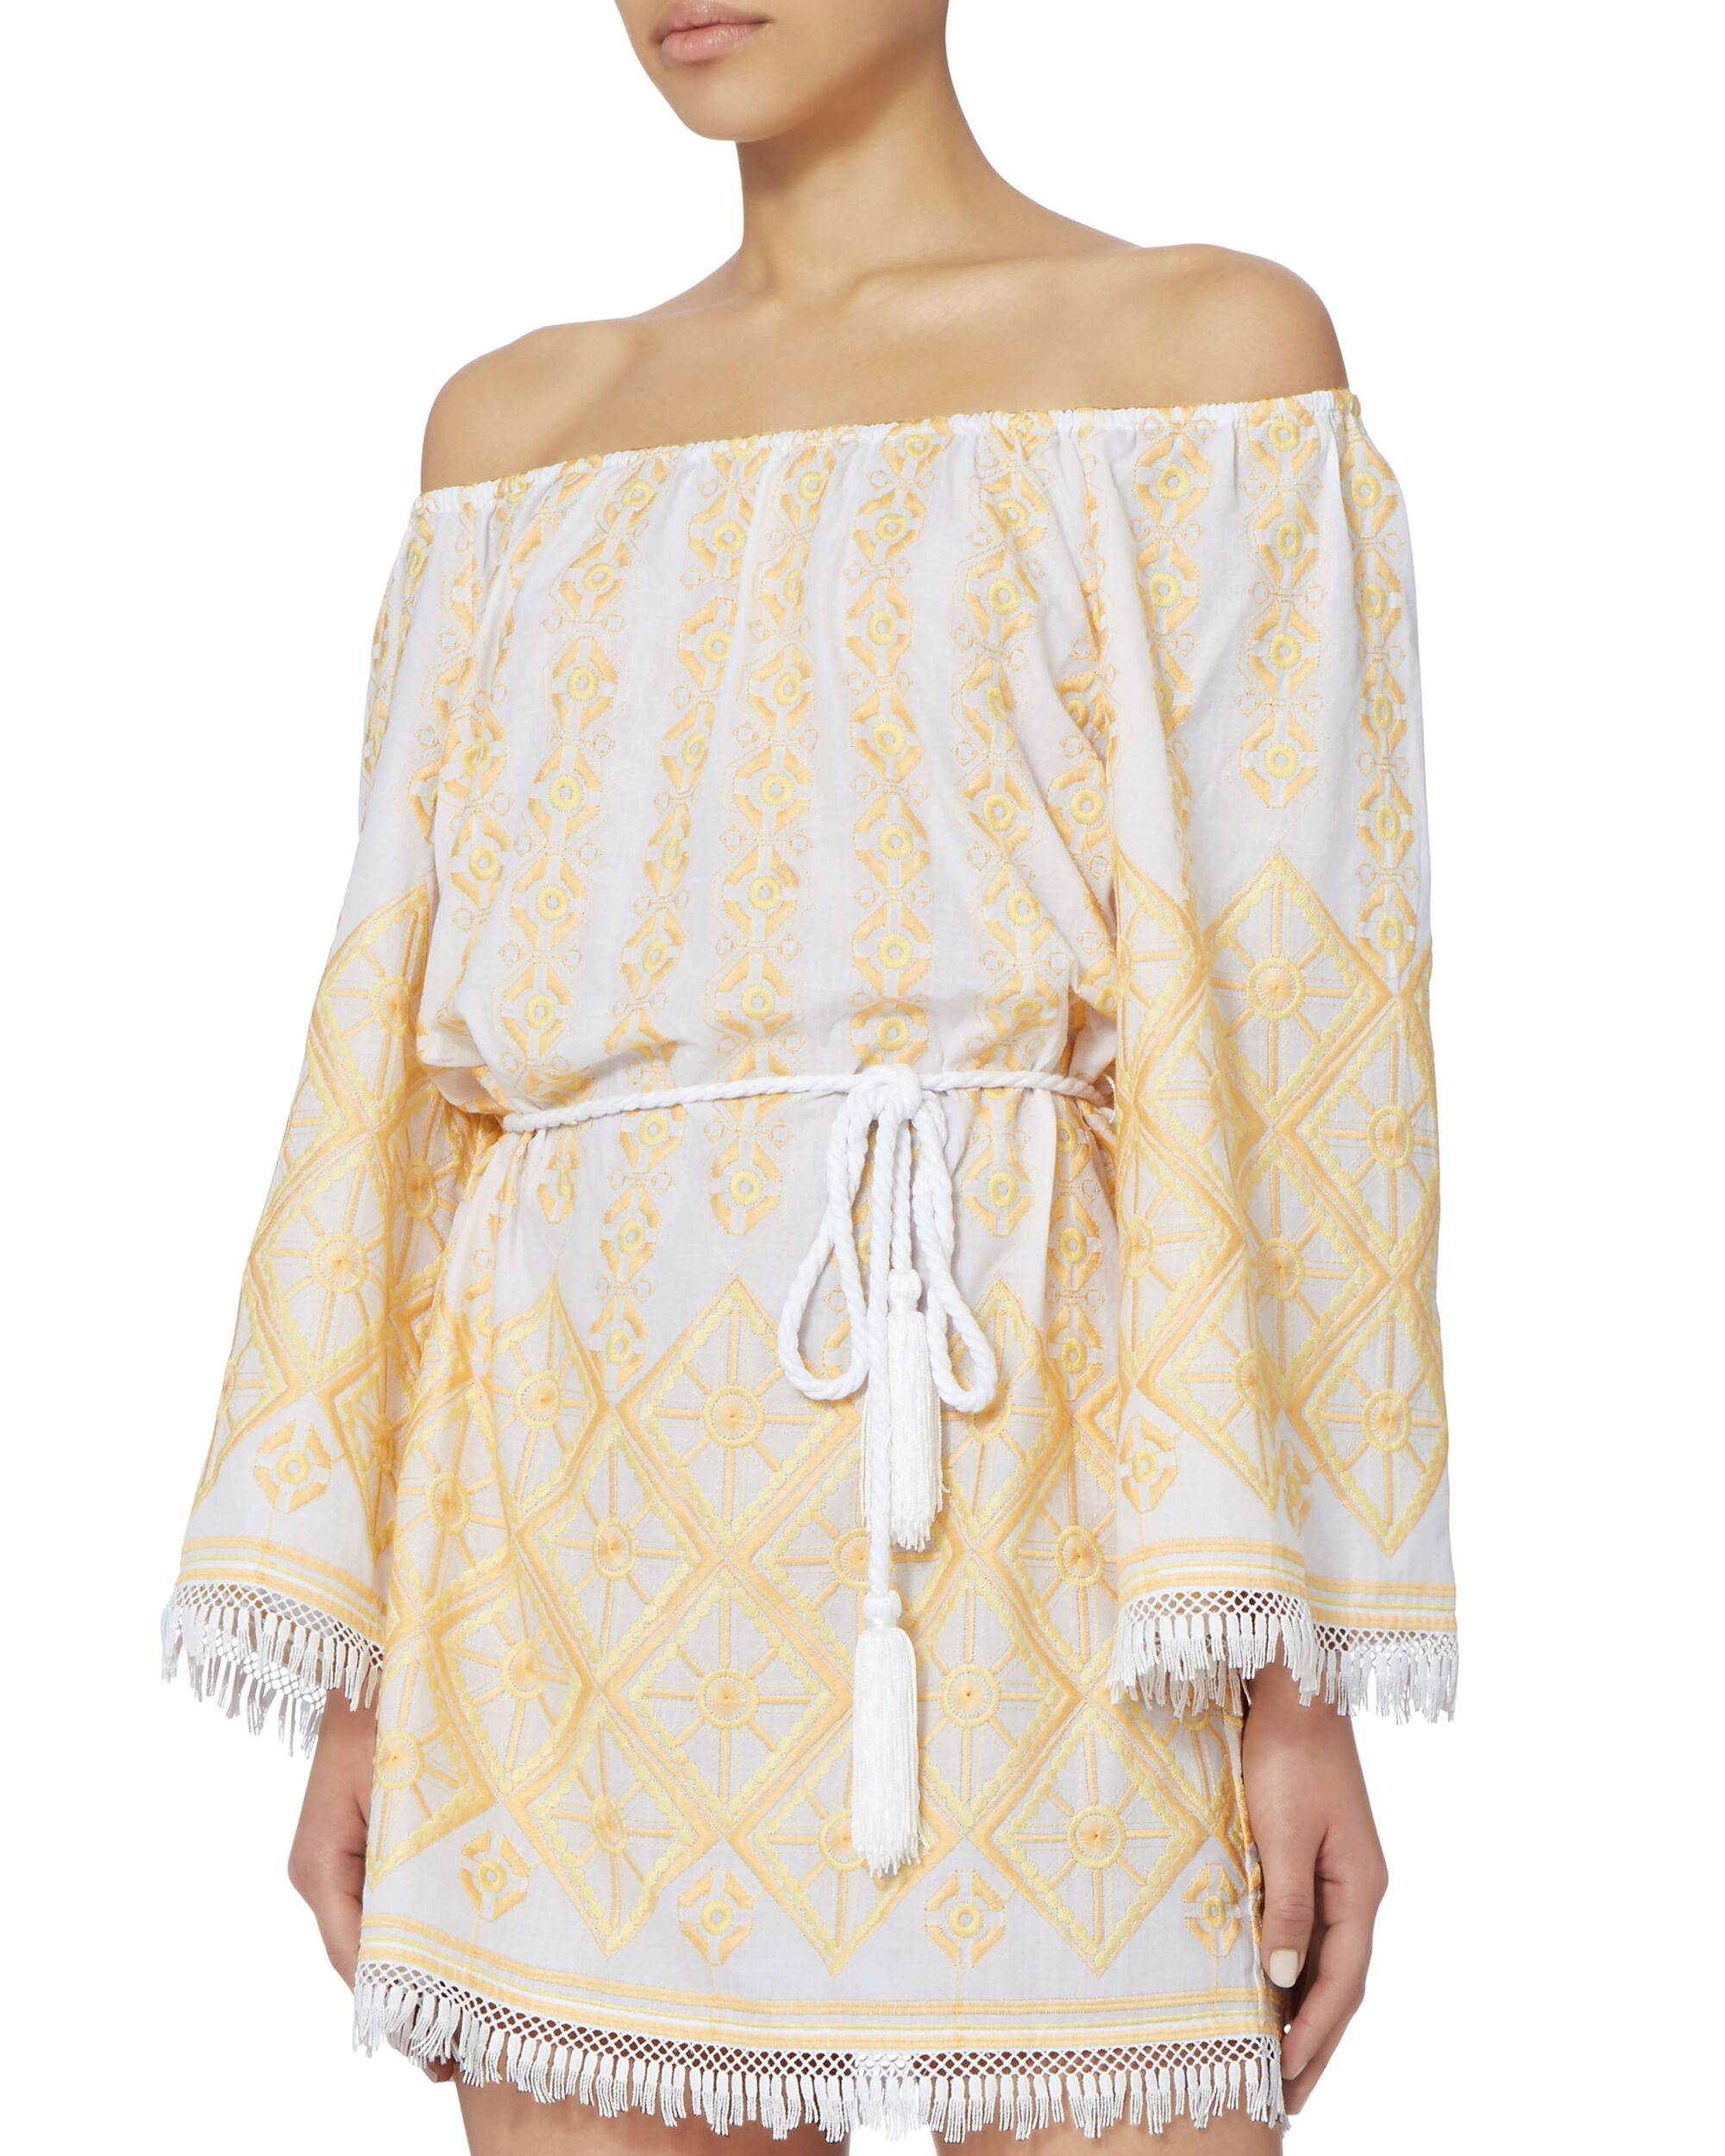 Brinley Embroidered Coverup Dress, PAT-TREND, hi-res